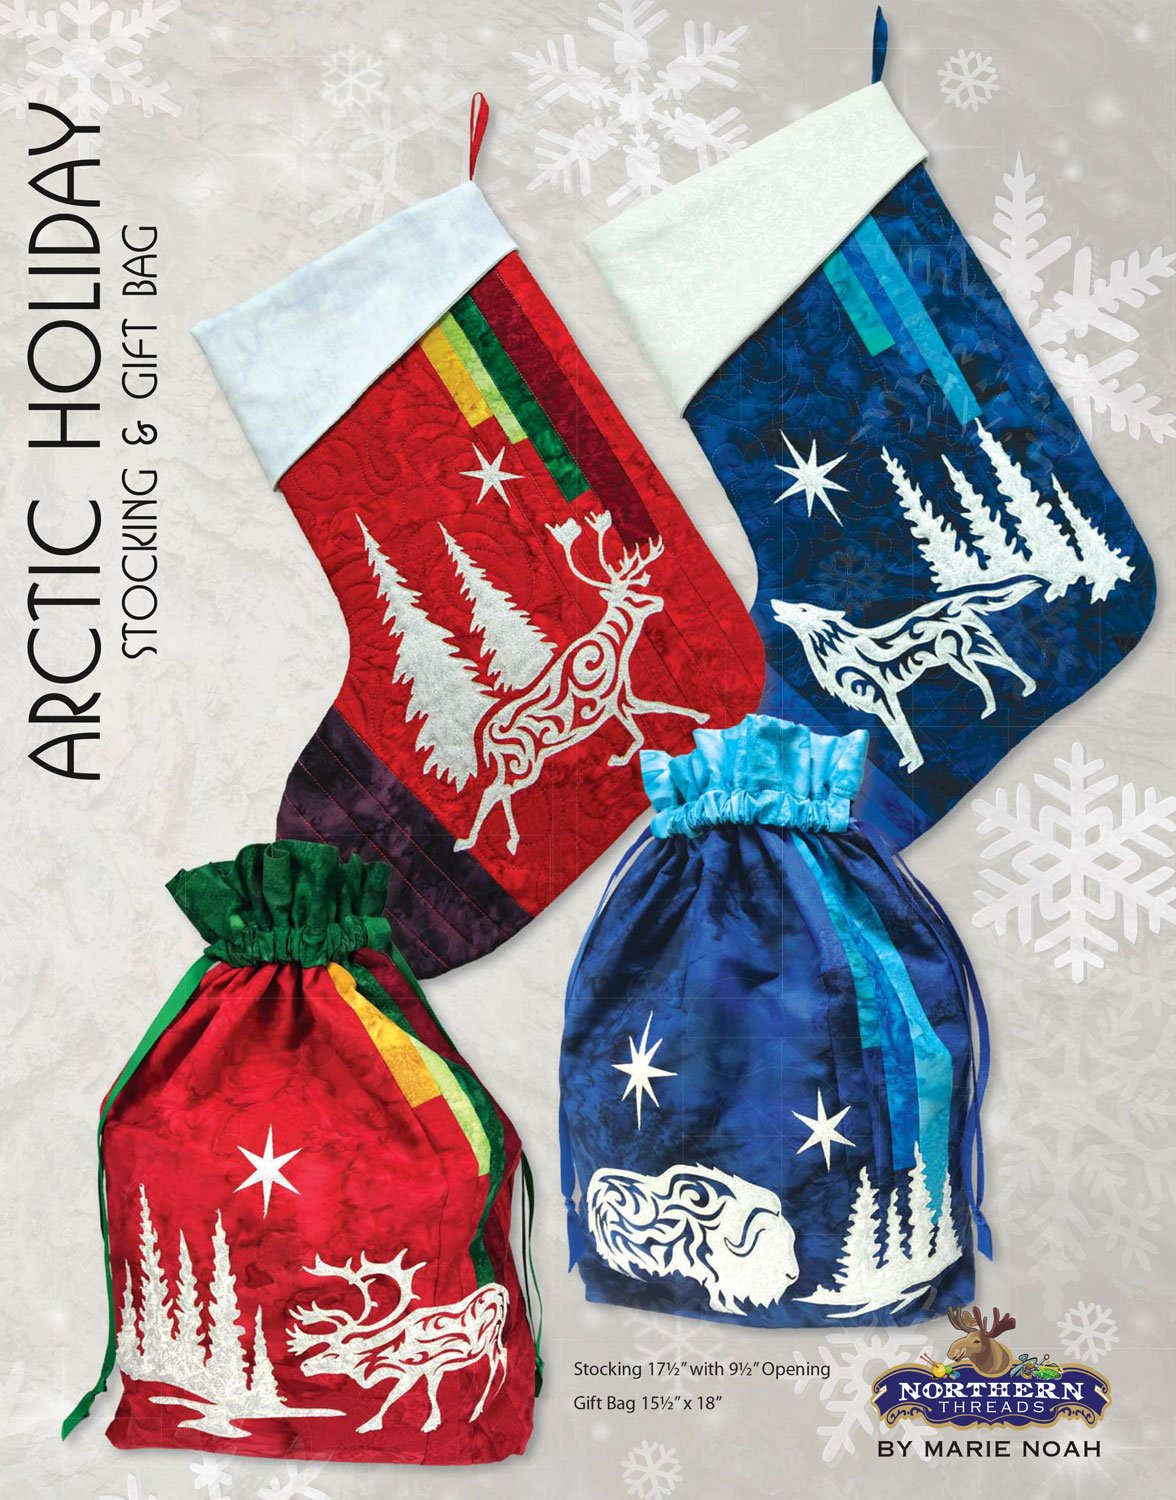 Arctic Holiday Stocking and Gift Bag Pattern